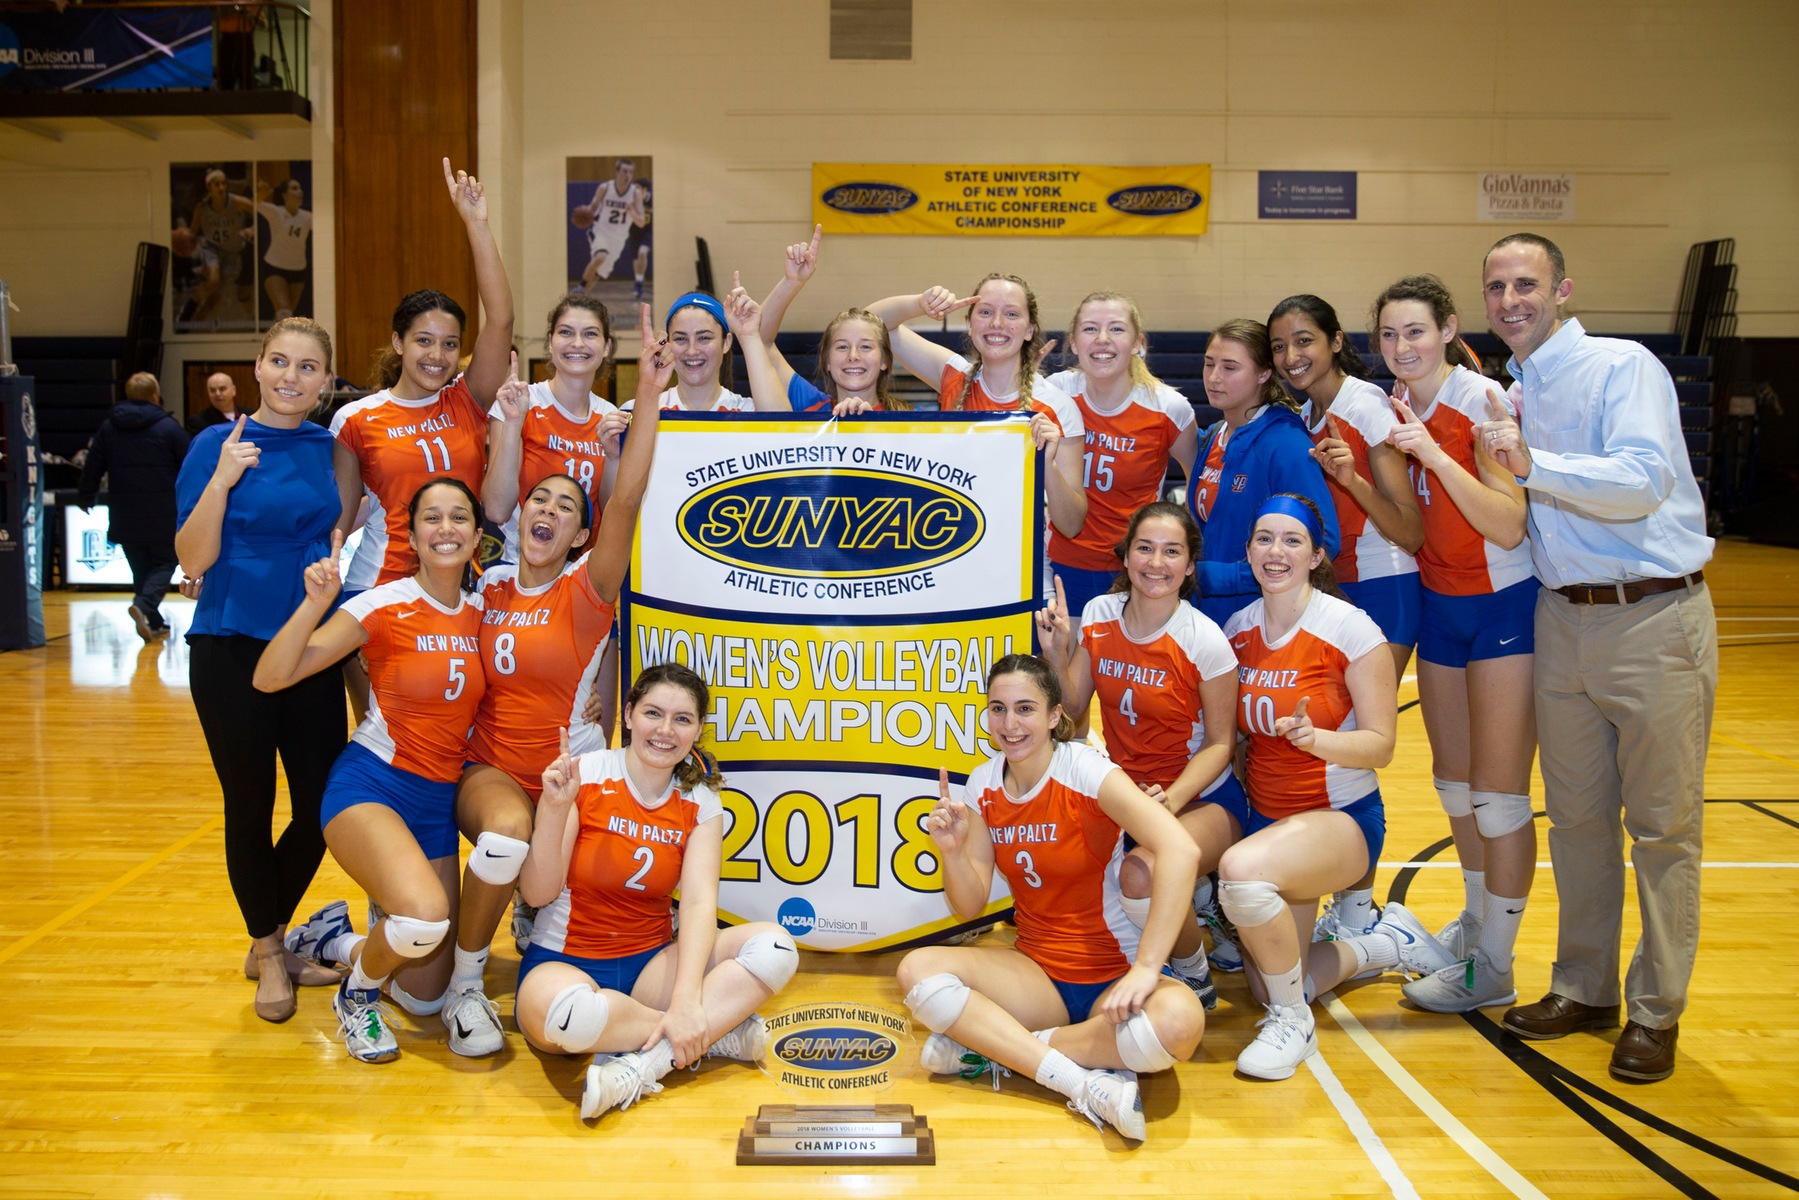 New Paltz defeats Geneseo in 2018 SUNYAC volleyball championship